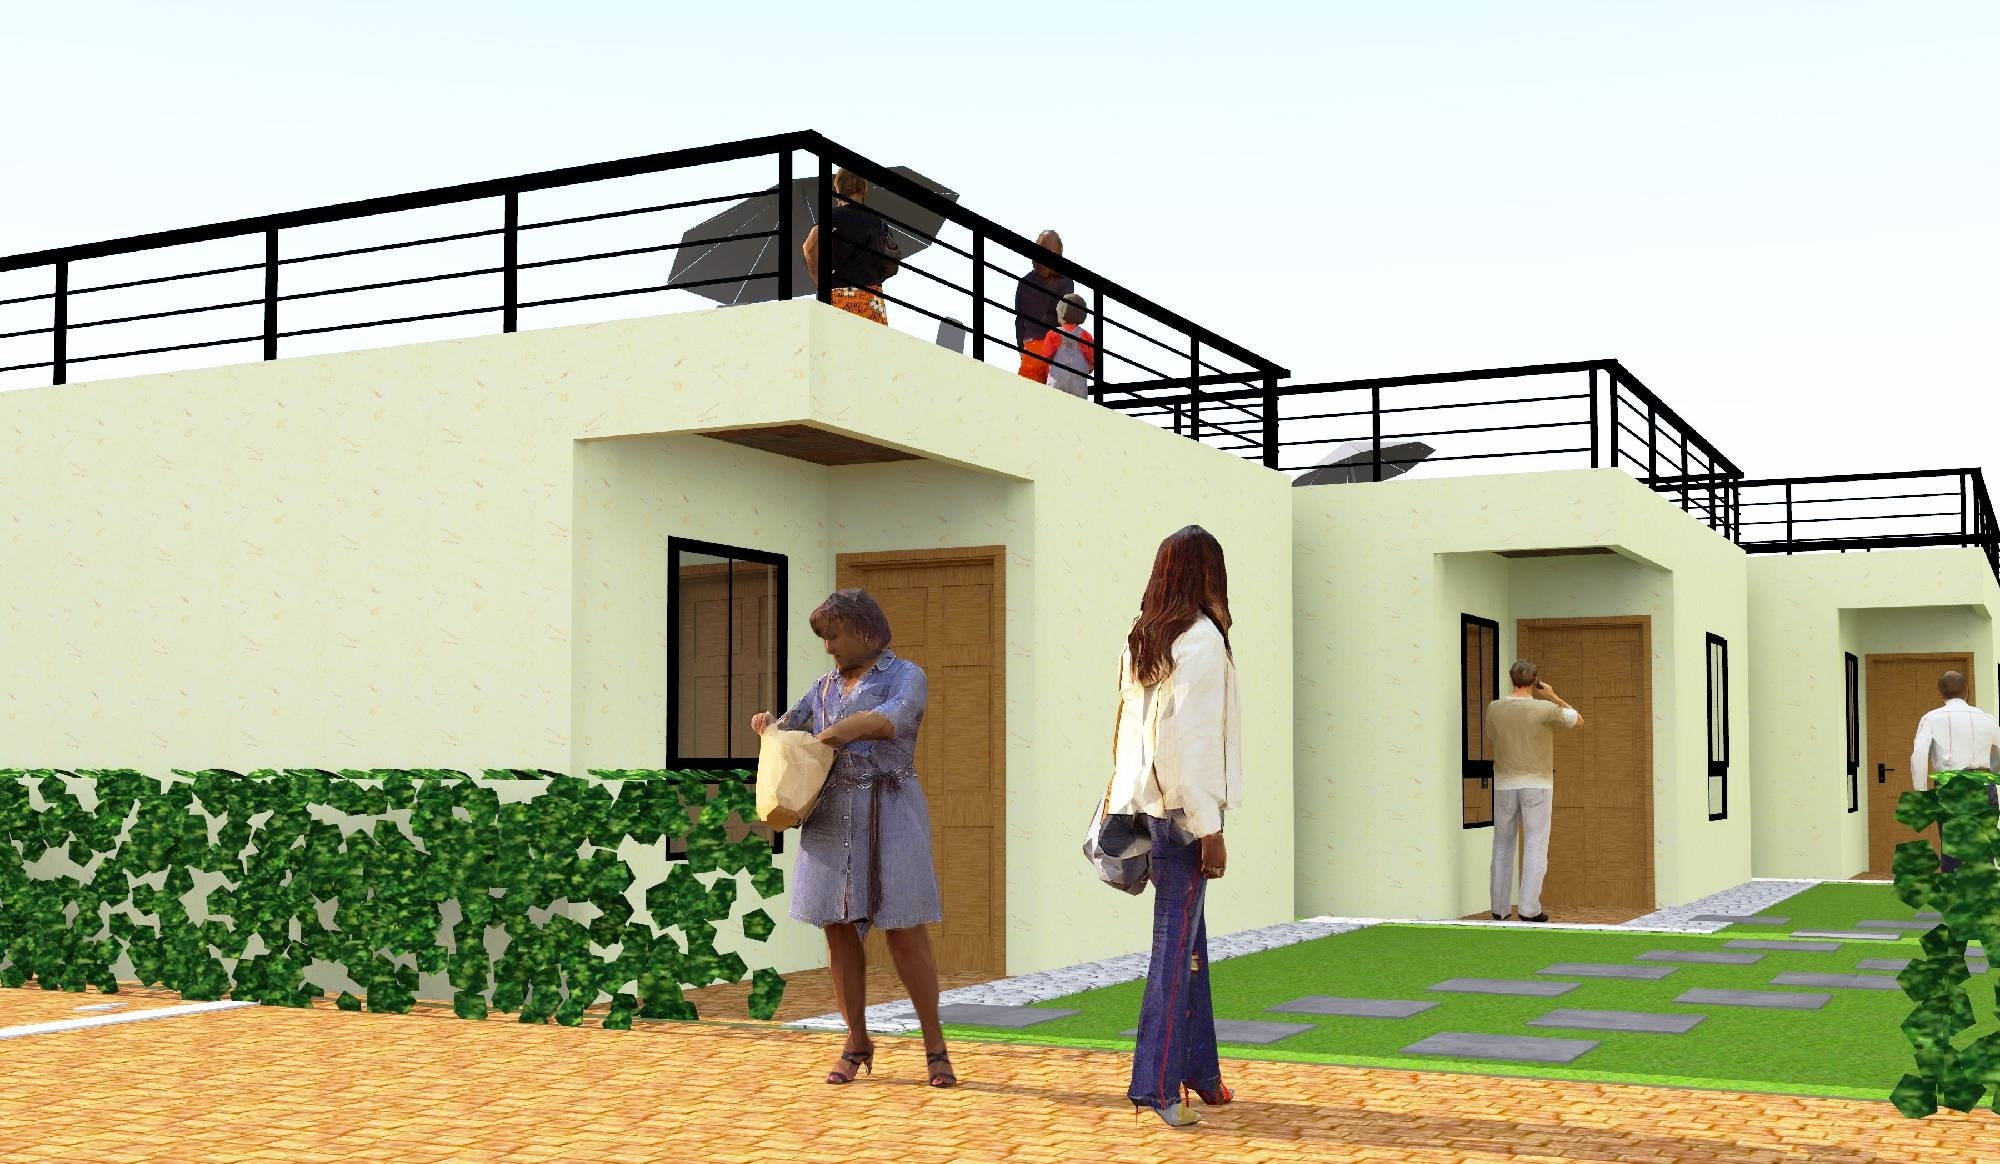 Unity Homes on canadian home designs, two story home designs, croatian home designs, syrian home designs, popular home designs, polish home designs, guyanese home designs, hungarian home designs, kenya house plans and designs, ugandan home designs, rwandan home designs, kenya architectural designs, bosnian home designs, 2015 home designs, kenya new house plan designs, serbian home designs, new england home designs, stylish eve home designs, italian home designs, zambian home designs,